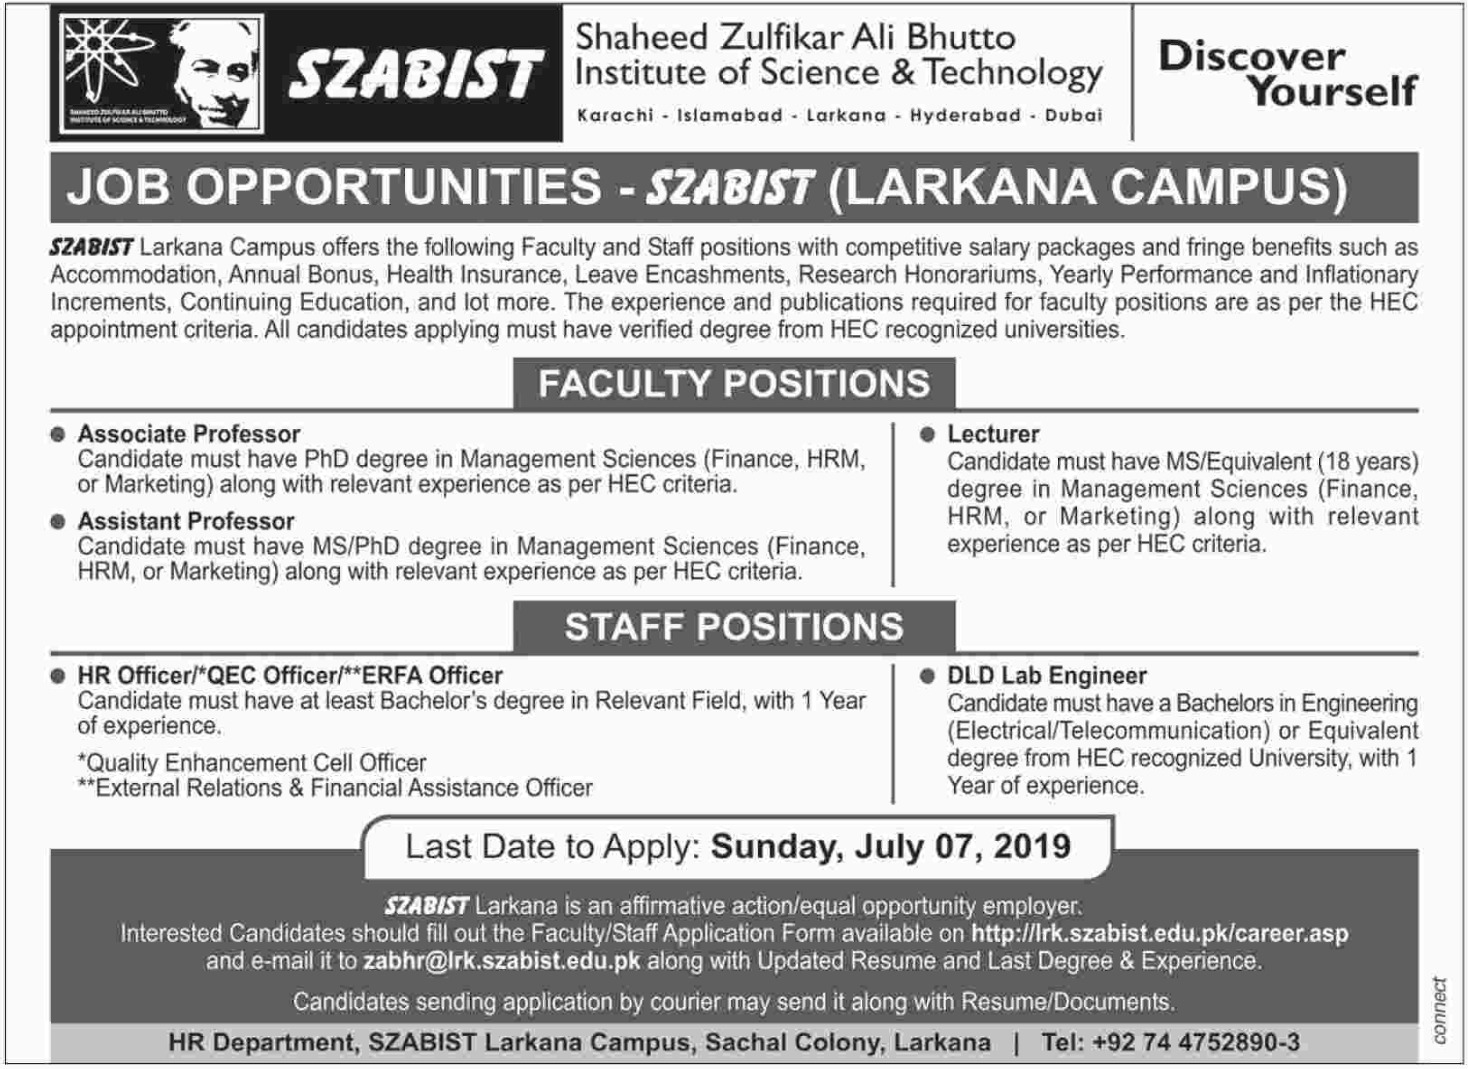 Shaheed Zulfikar Ali Bhutto Institute of Science & Technology SZABIST Jobs 2019 Larkana Campus